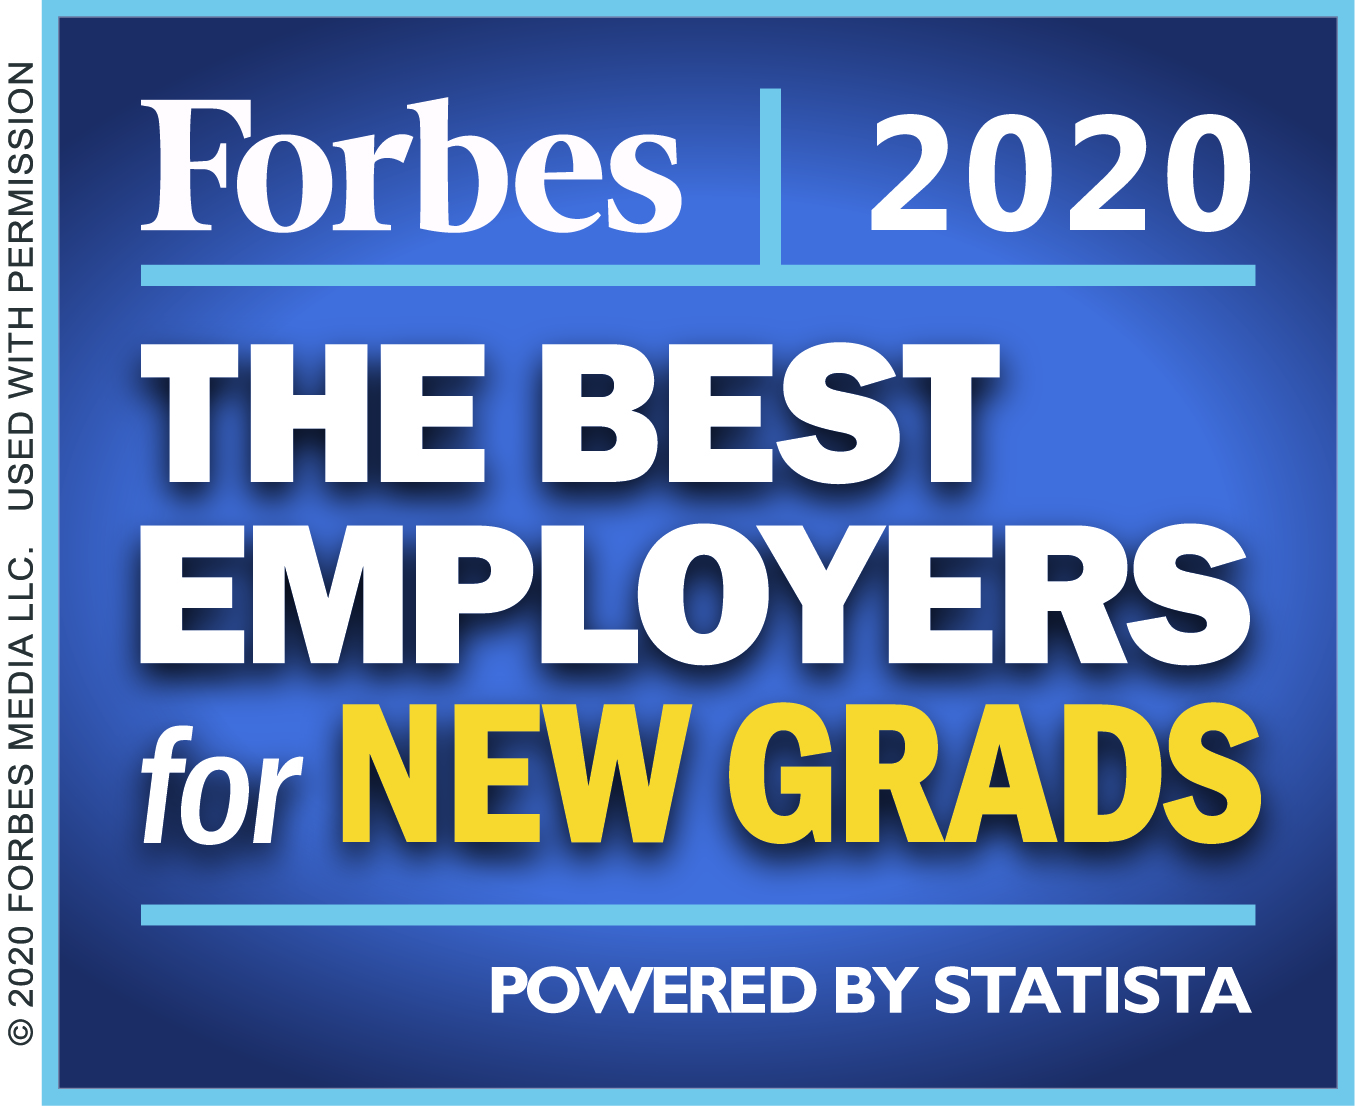 Forbes: The Best Employer for New Grads - 2020